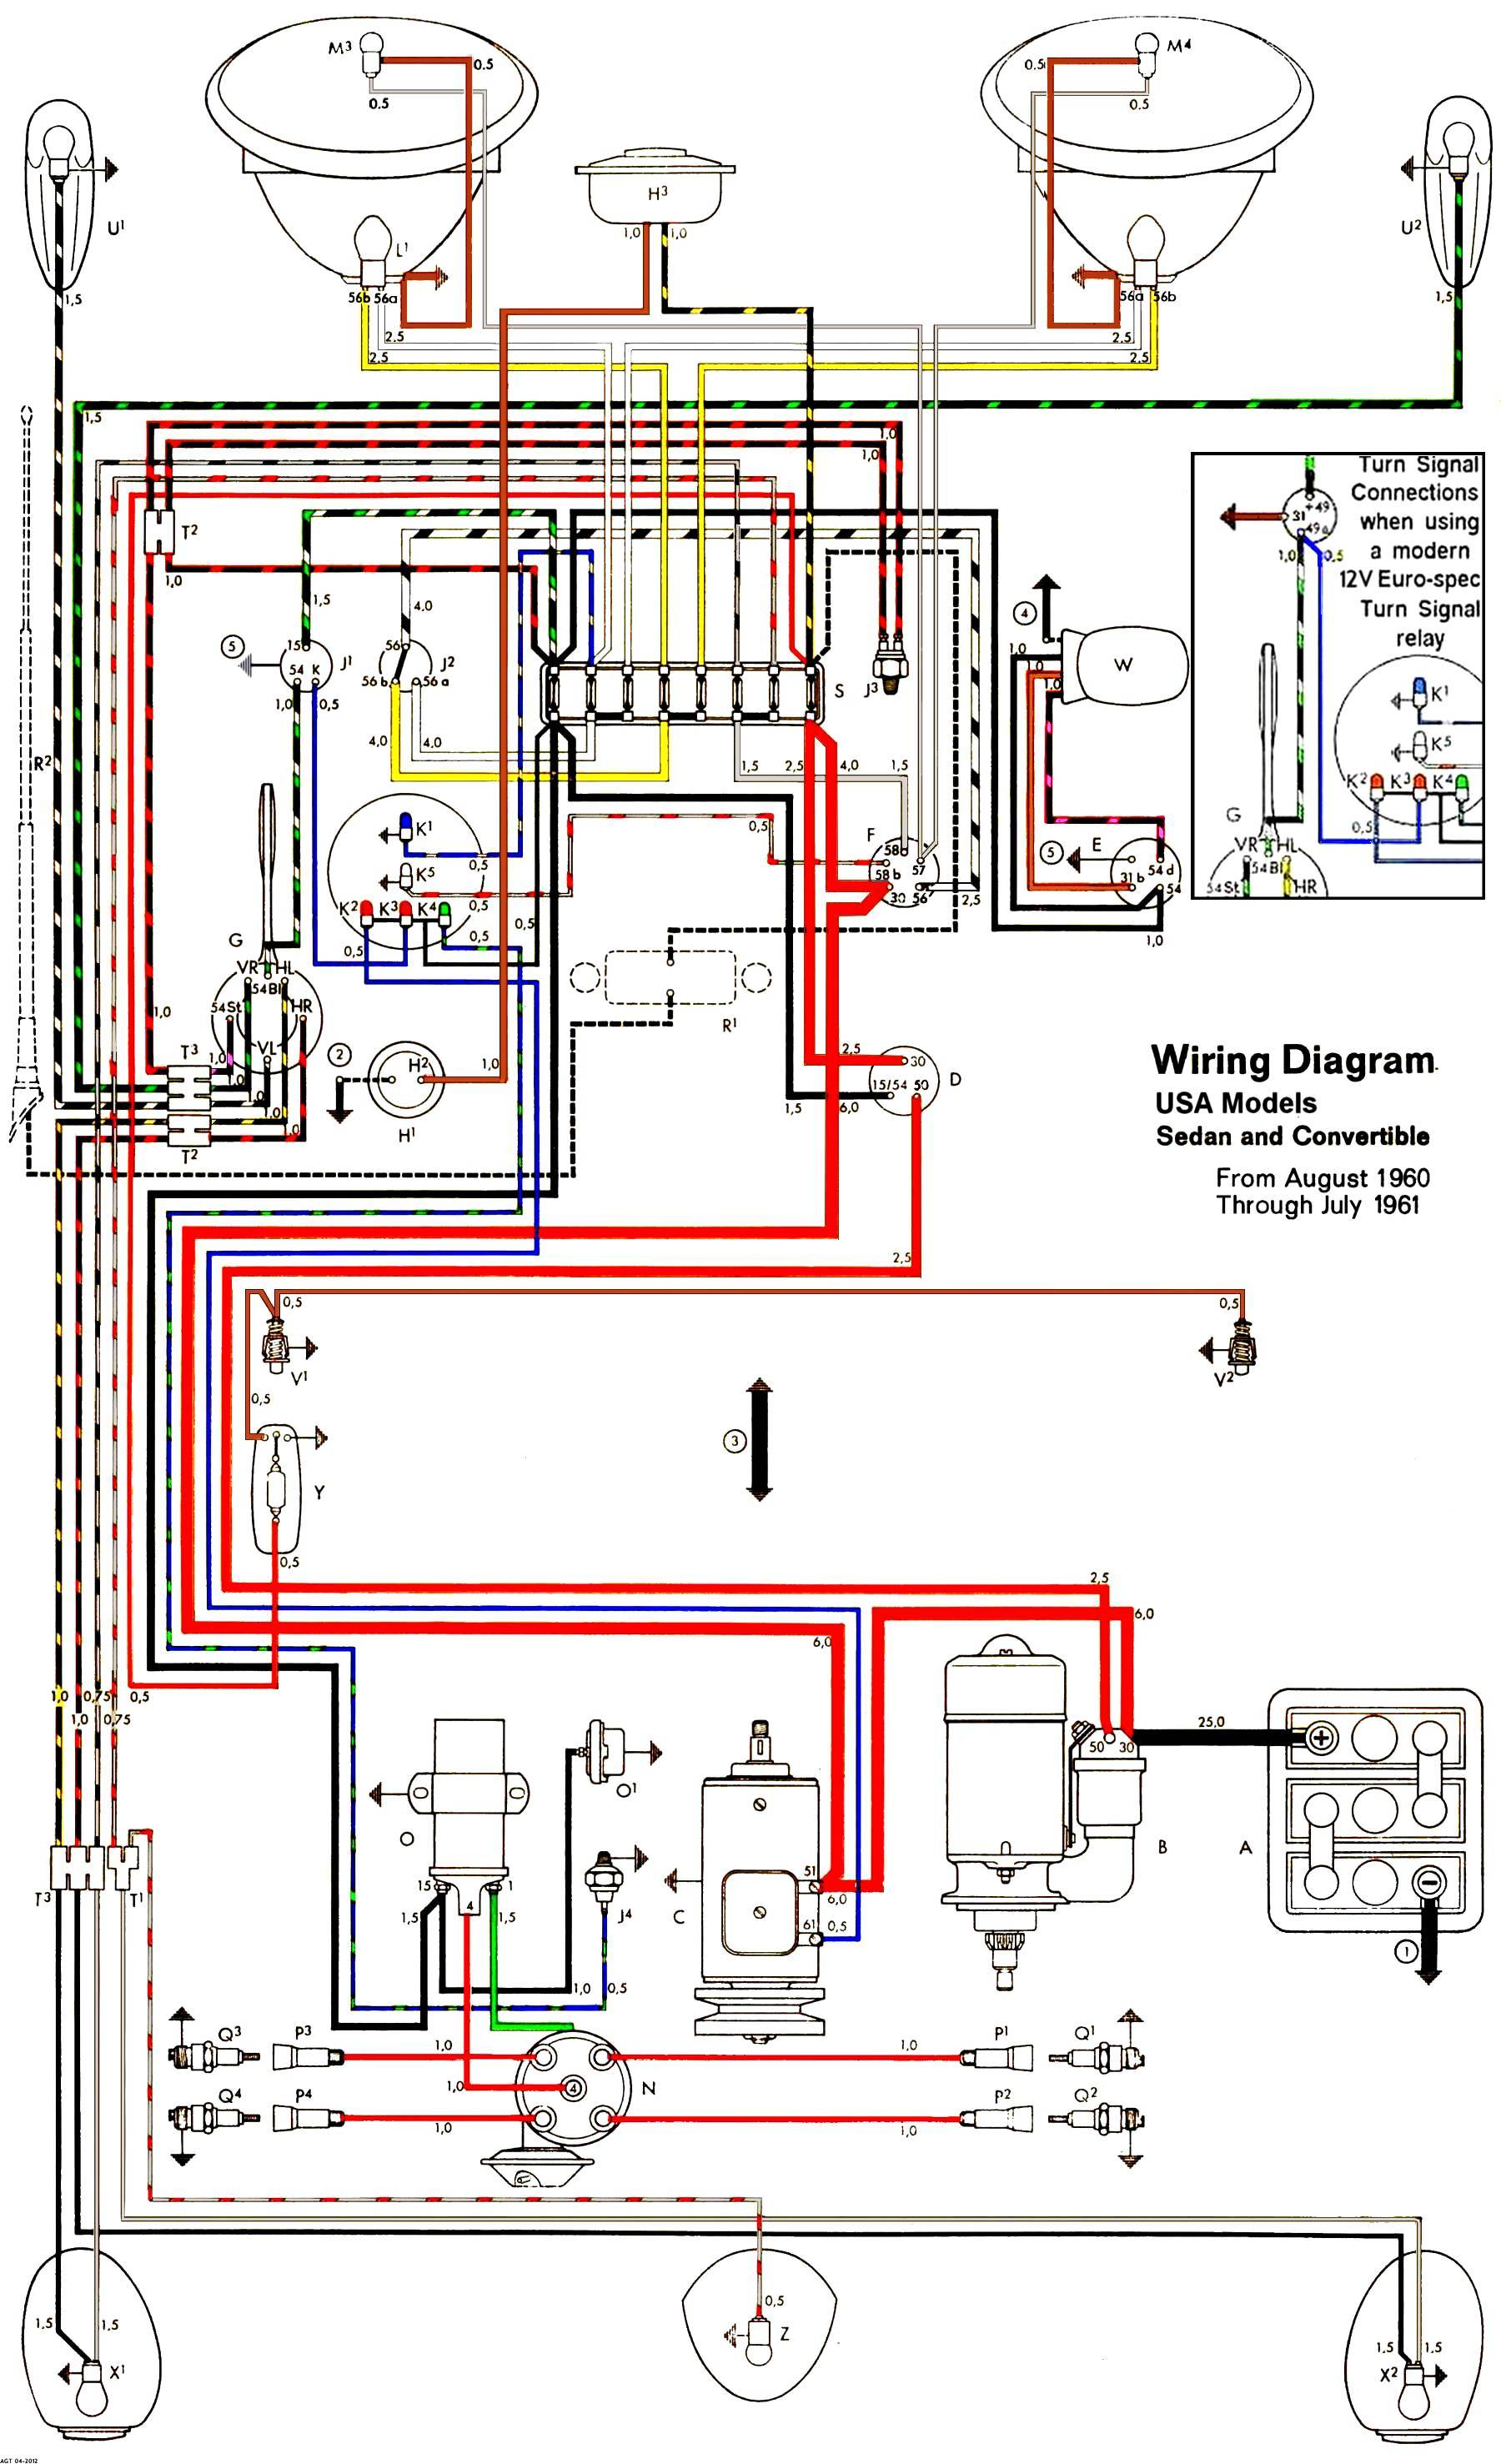 1961USA T1 vw bug turn signal wiring diagram vw beetle flasher relay wiring vw bug turn signal wiring diagram at eliteediting.co